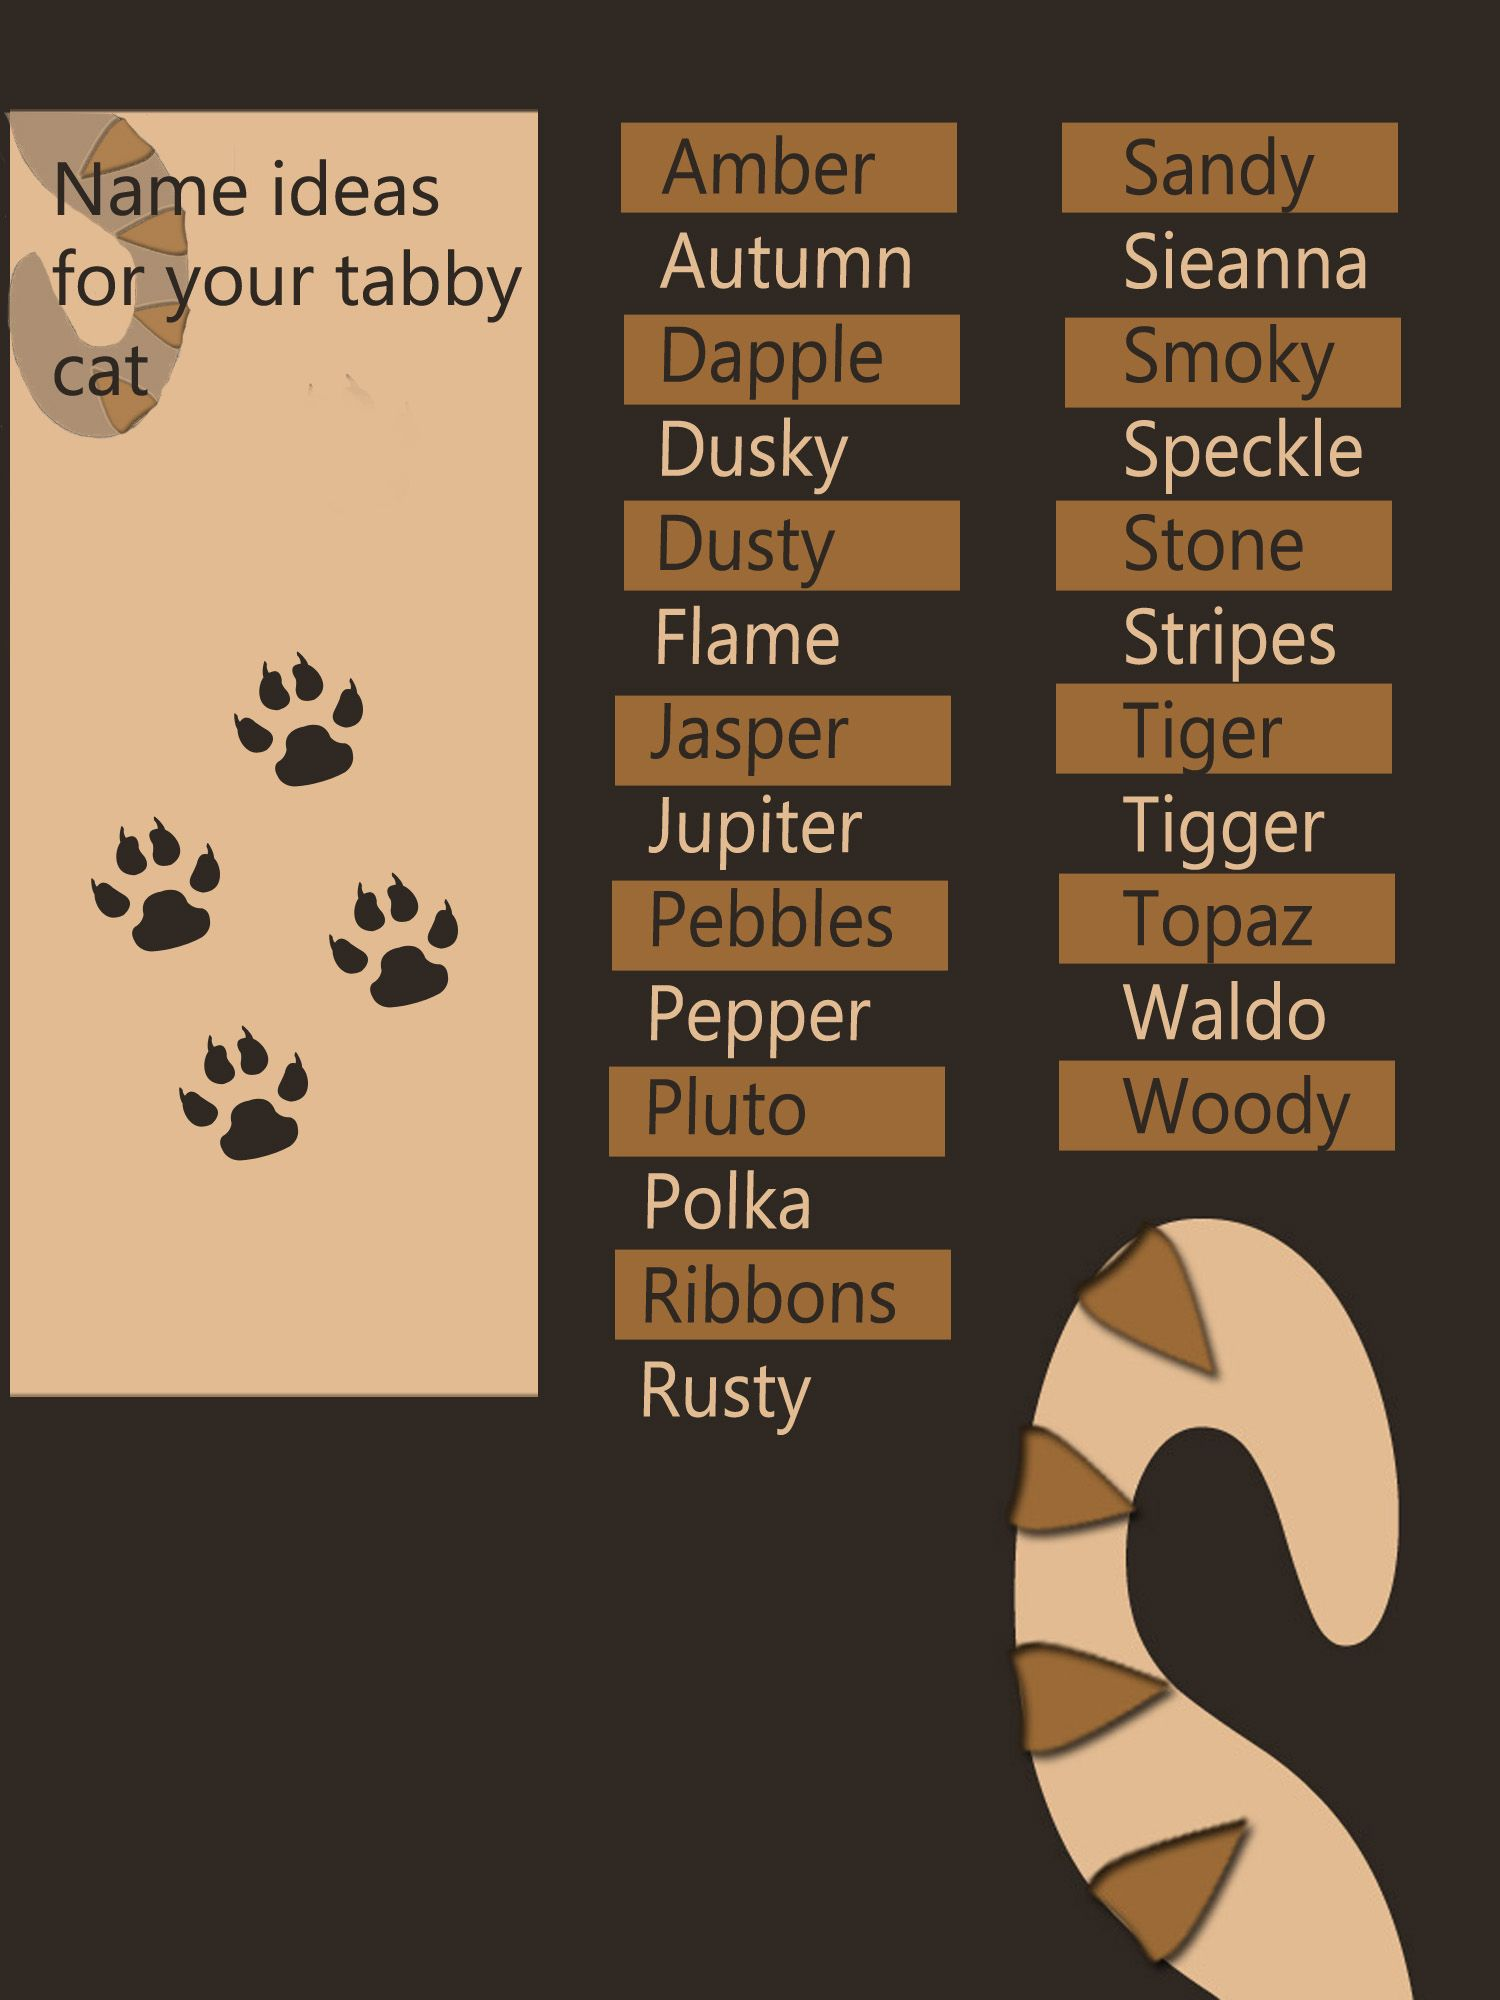 Tabby Cat Names The Unusual Markings Of A Tabby Cat Deserve A Special Name 25 Tabby Cat Names Tabby Cat Names Cat Care Tips Cat Care